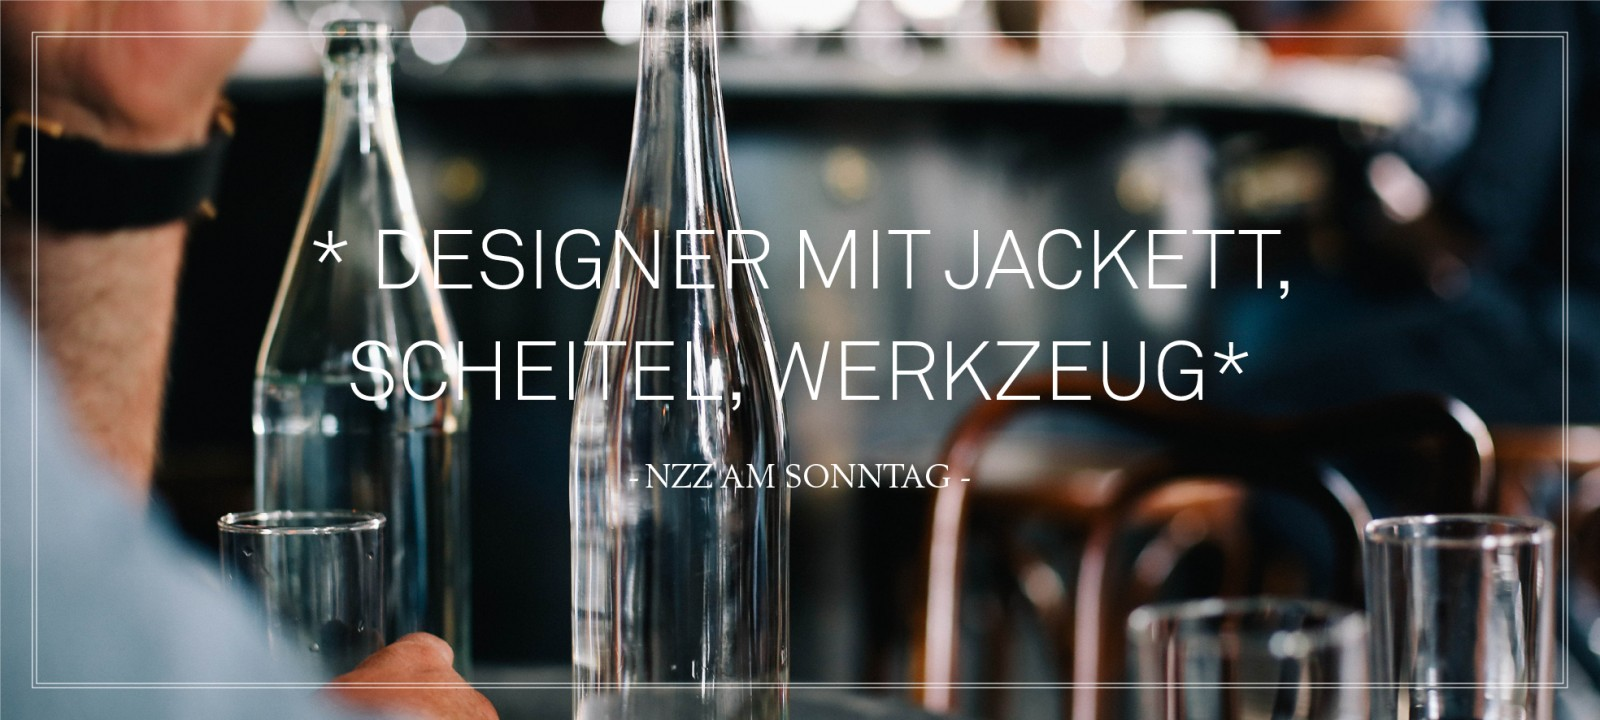 DYER-SMITH FREY - Interior & Branding - Zurich